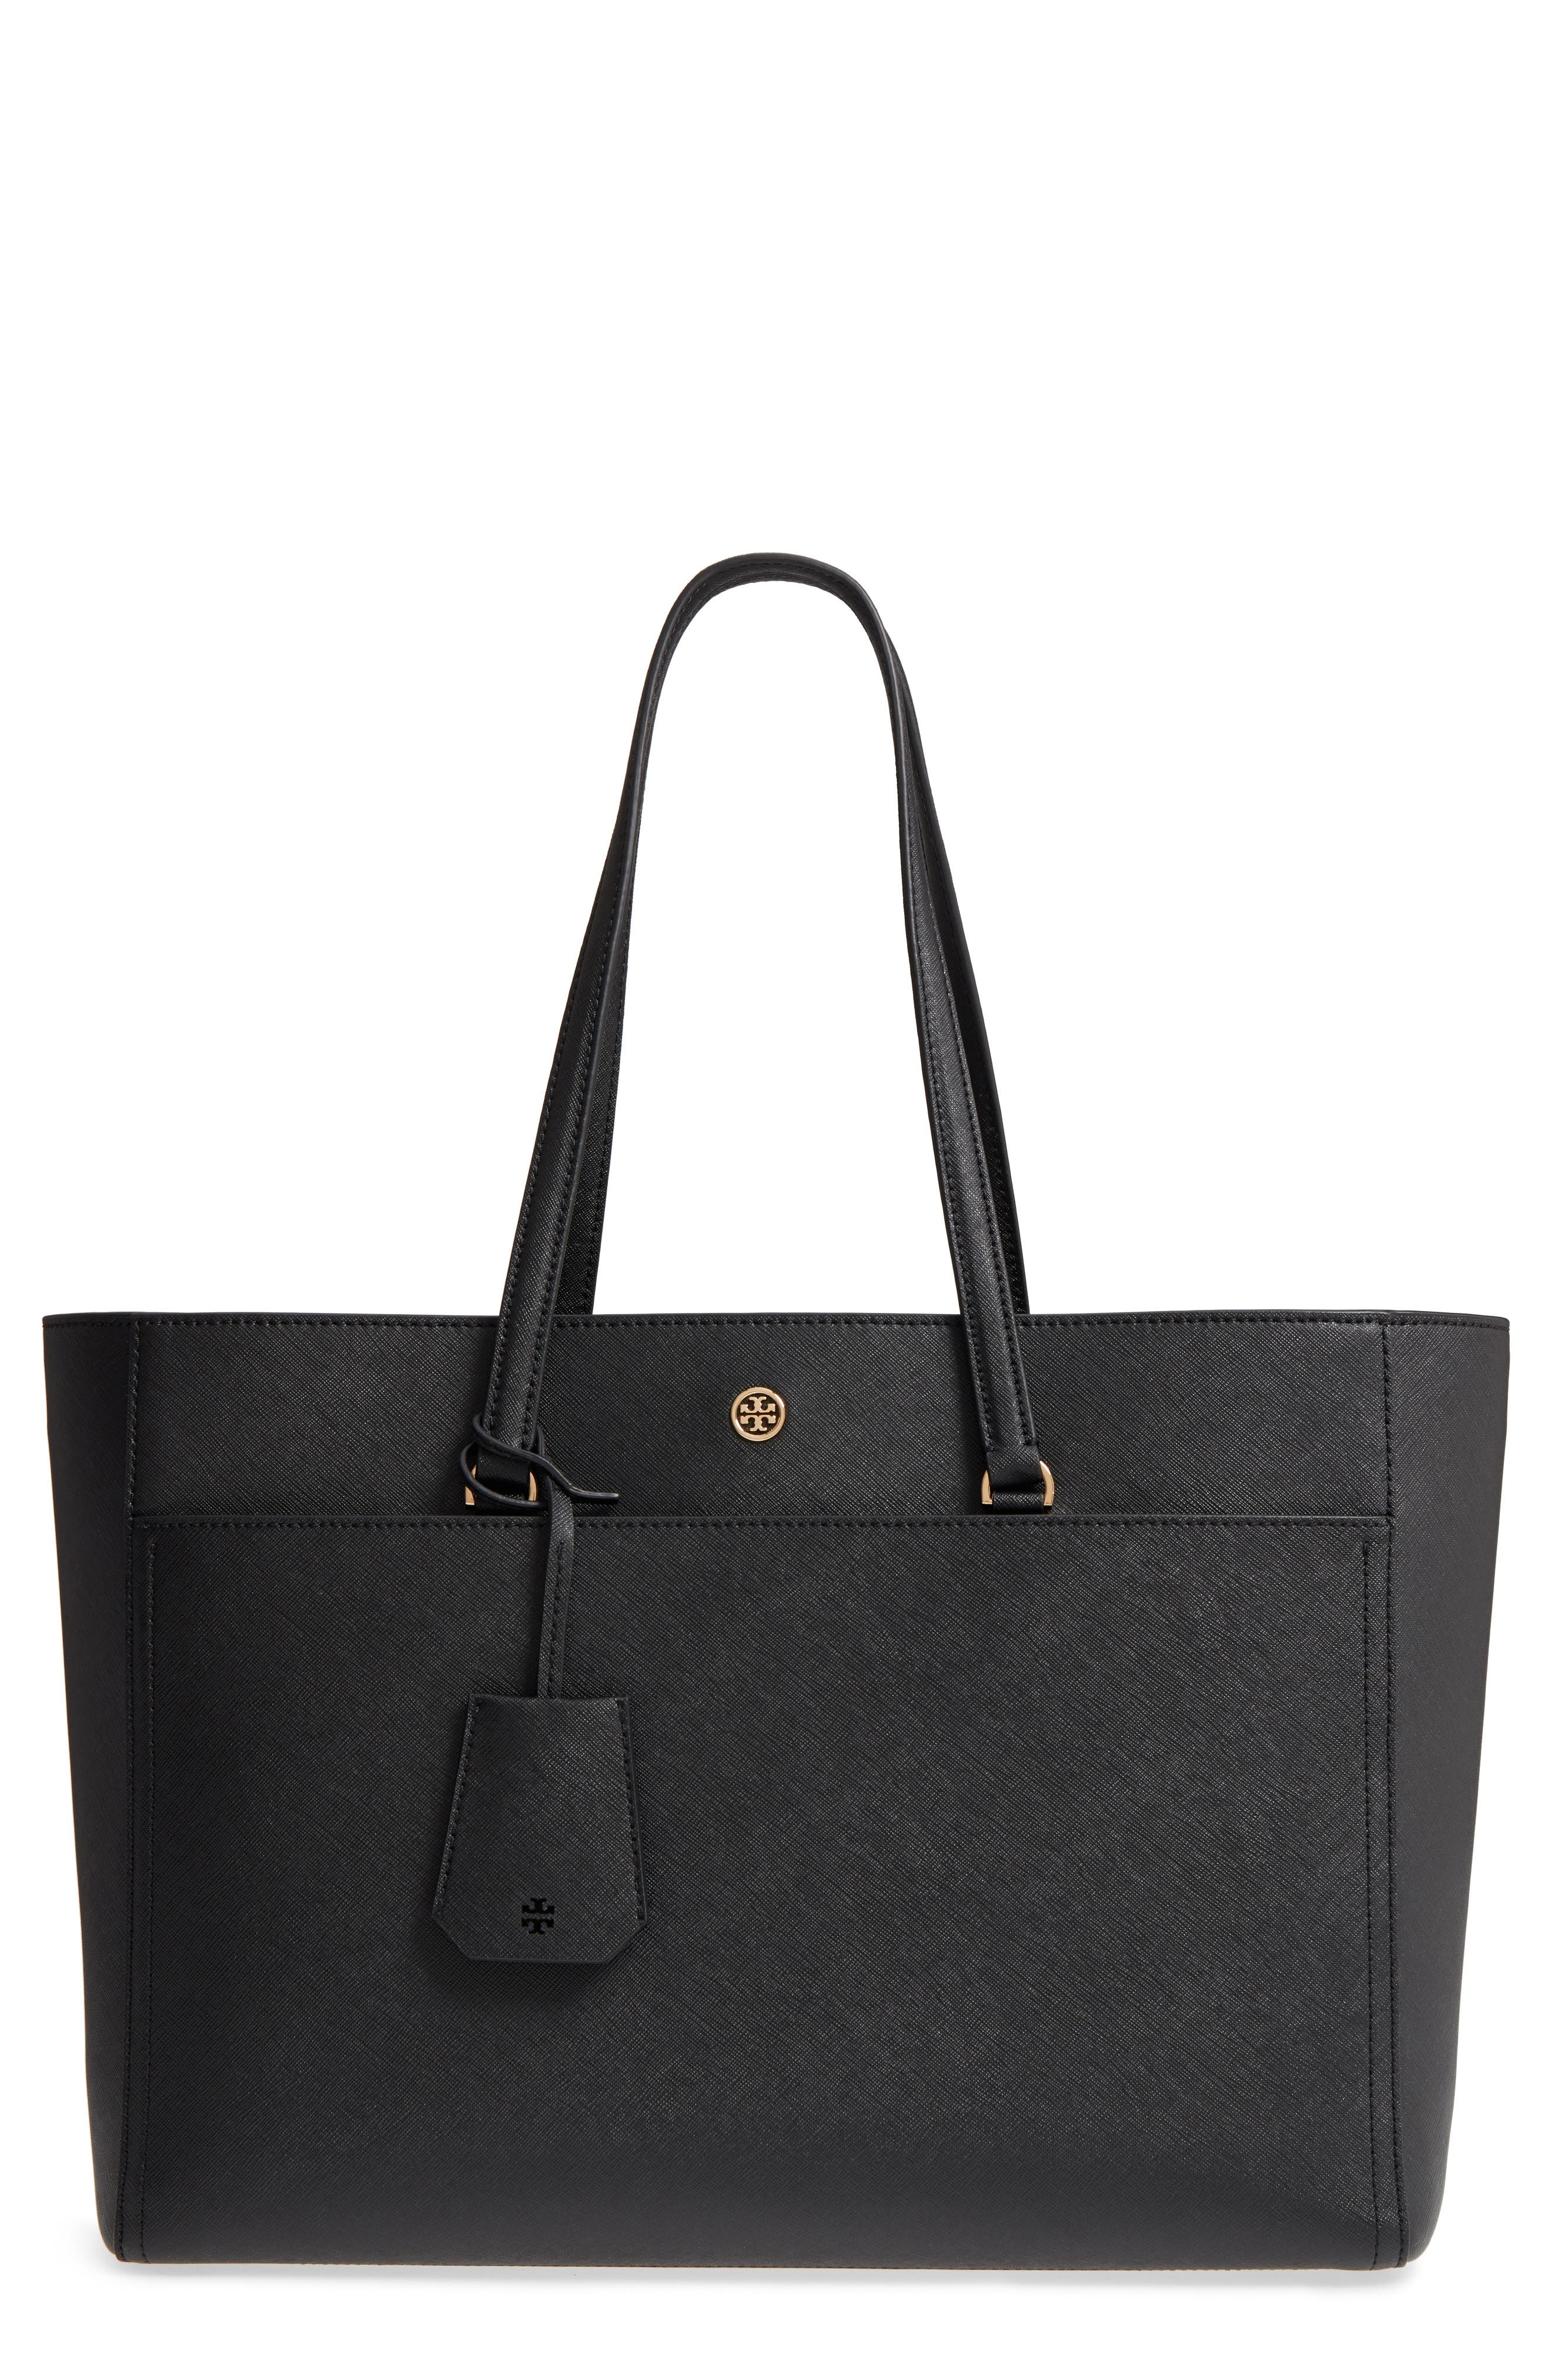 TORY BURCH Robinson Leather Tote, Main, color, 001